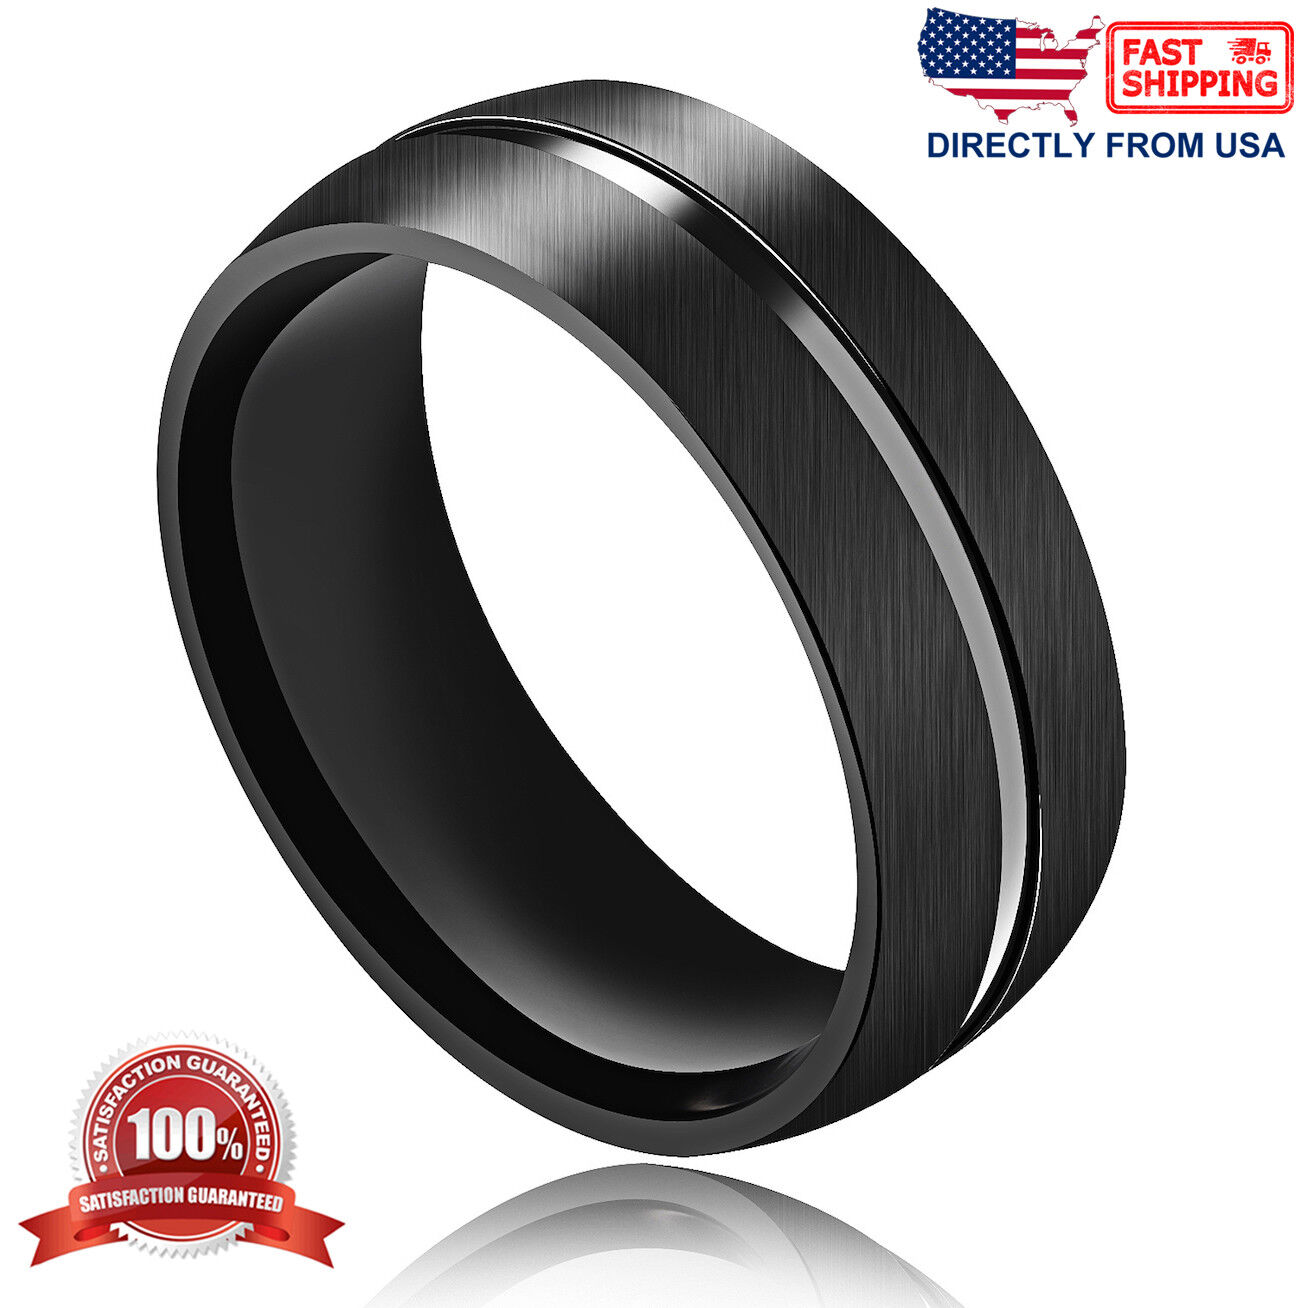 Men's Ring, Stainless Steel Brushed Finish 8mm Comfort Fit Wedding Band Jewelry & Watches